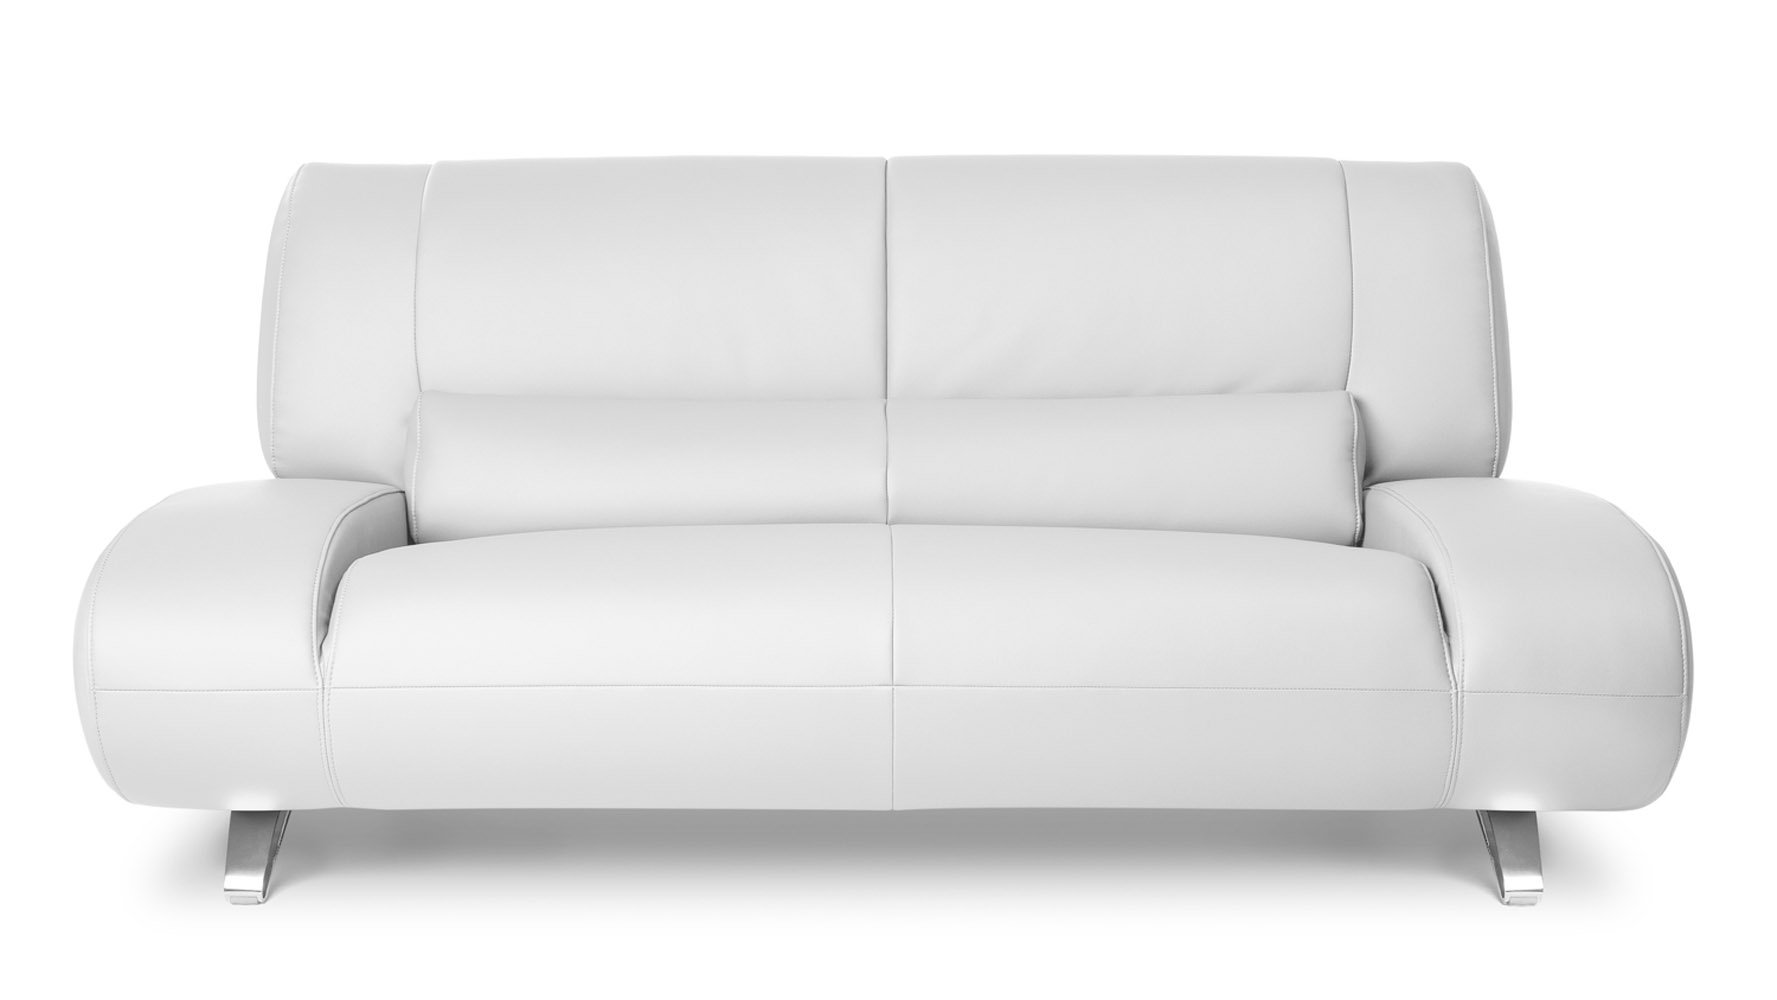 Products In Leather | Leatherette   By Material   Seating   LIVING On Zuri  Furniture